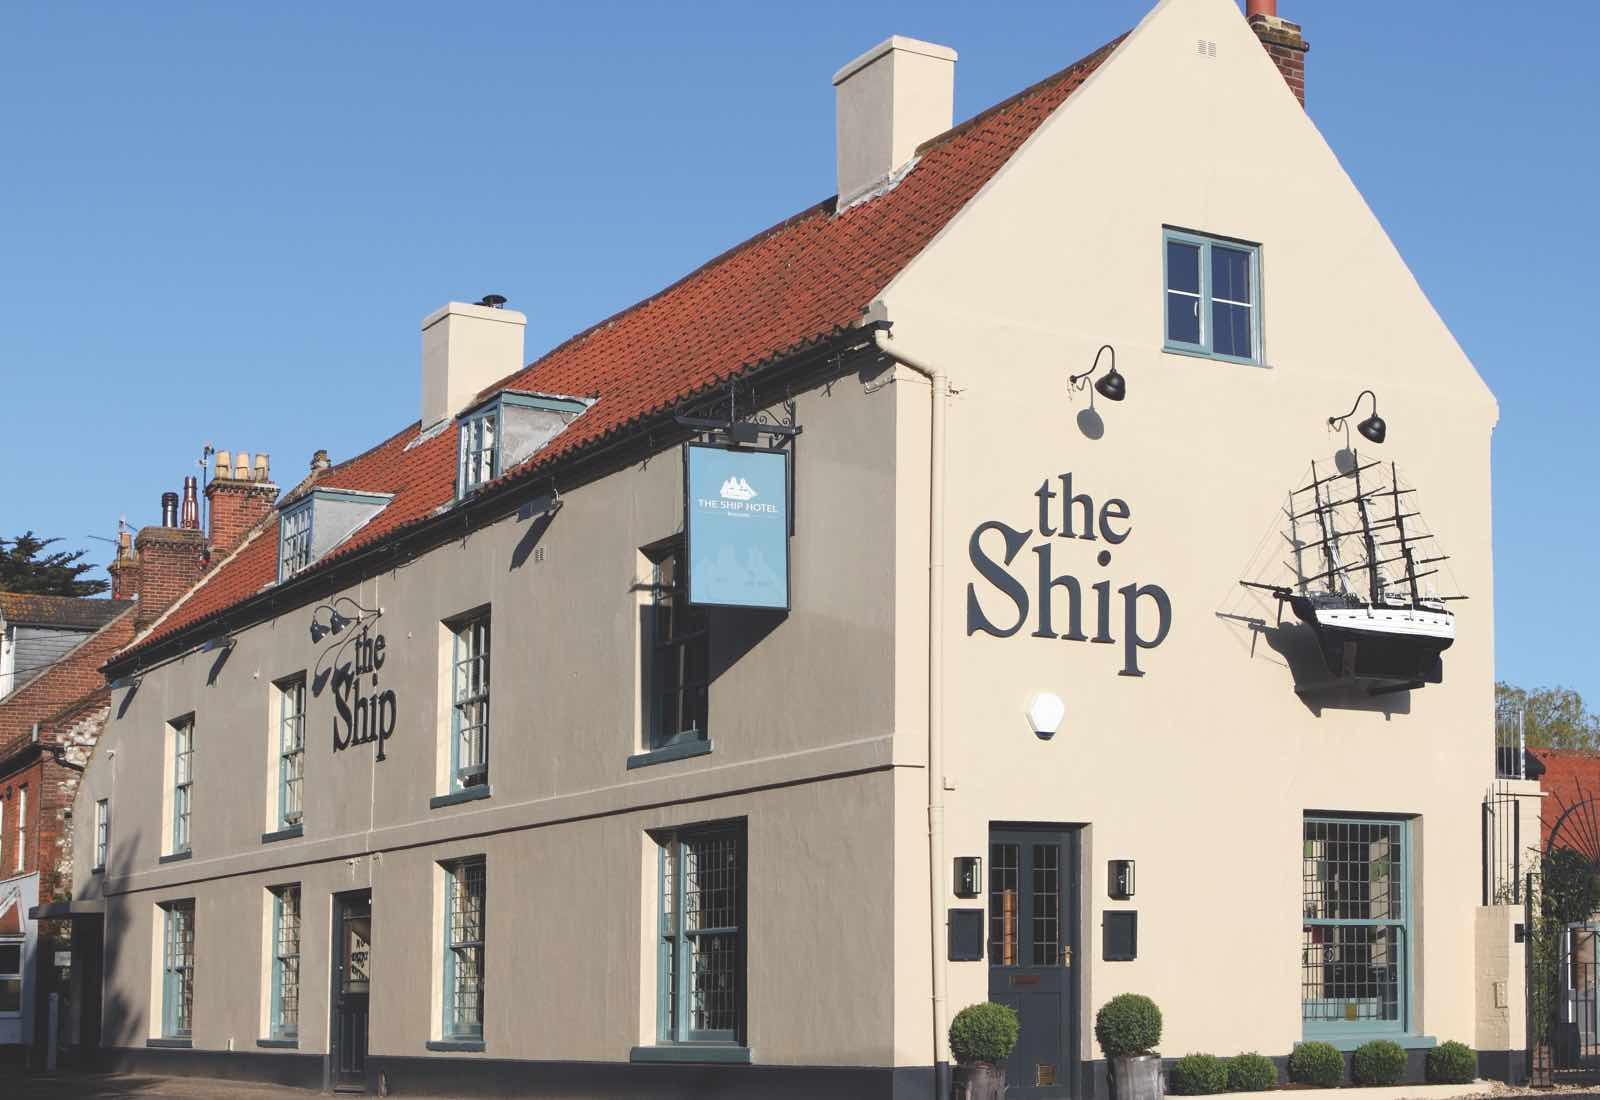 Exterior shot of the Ship Hotel, Brancaster